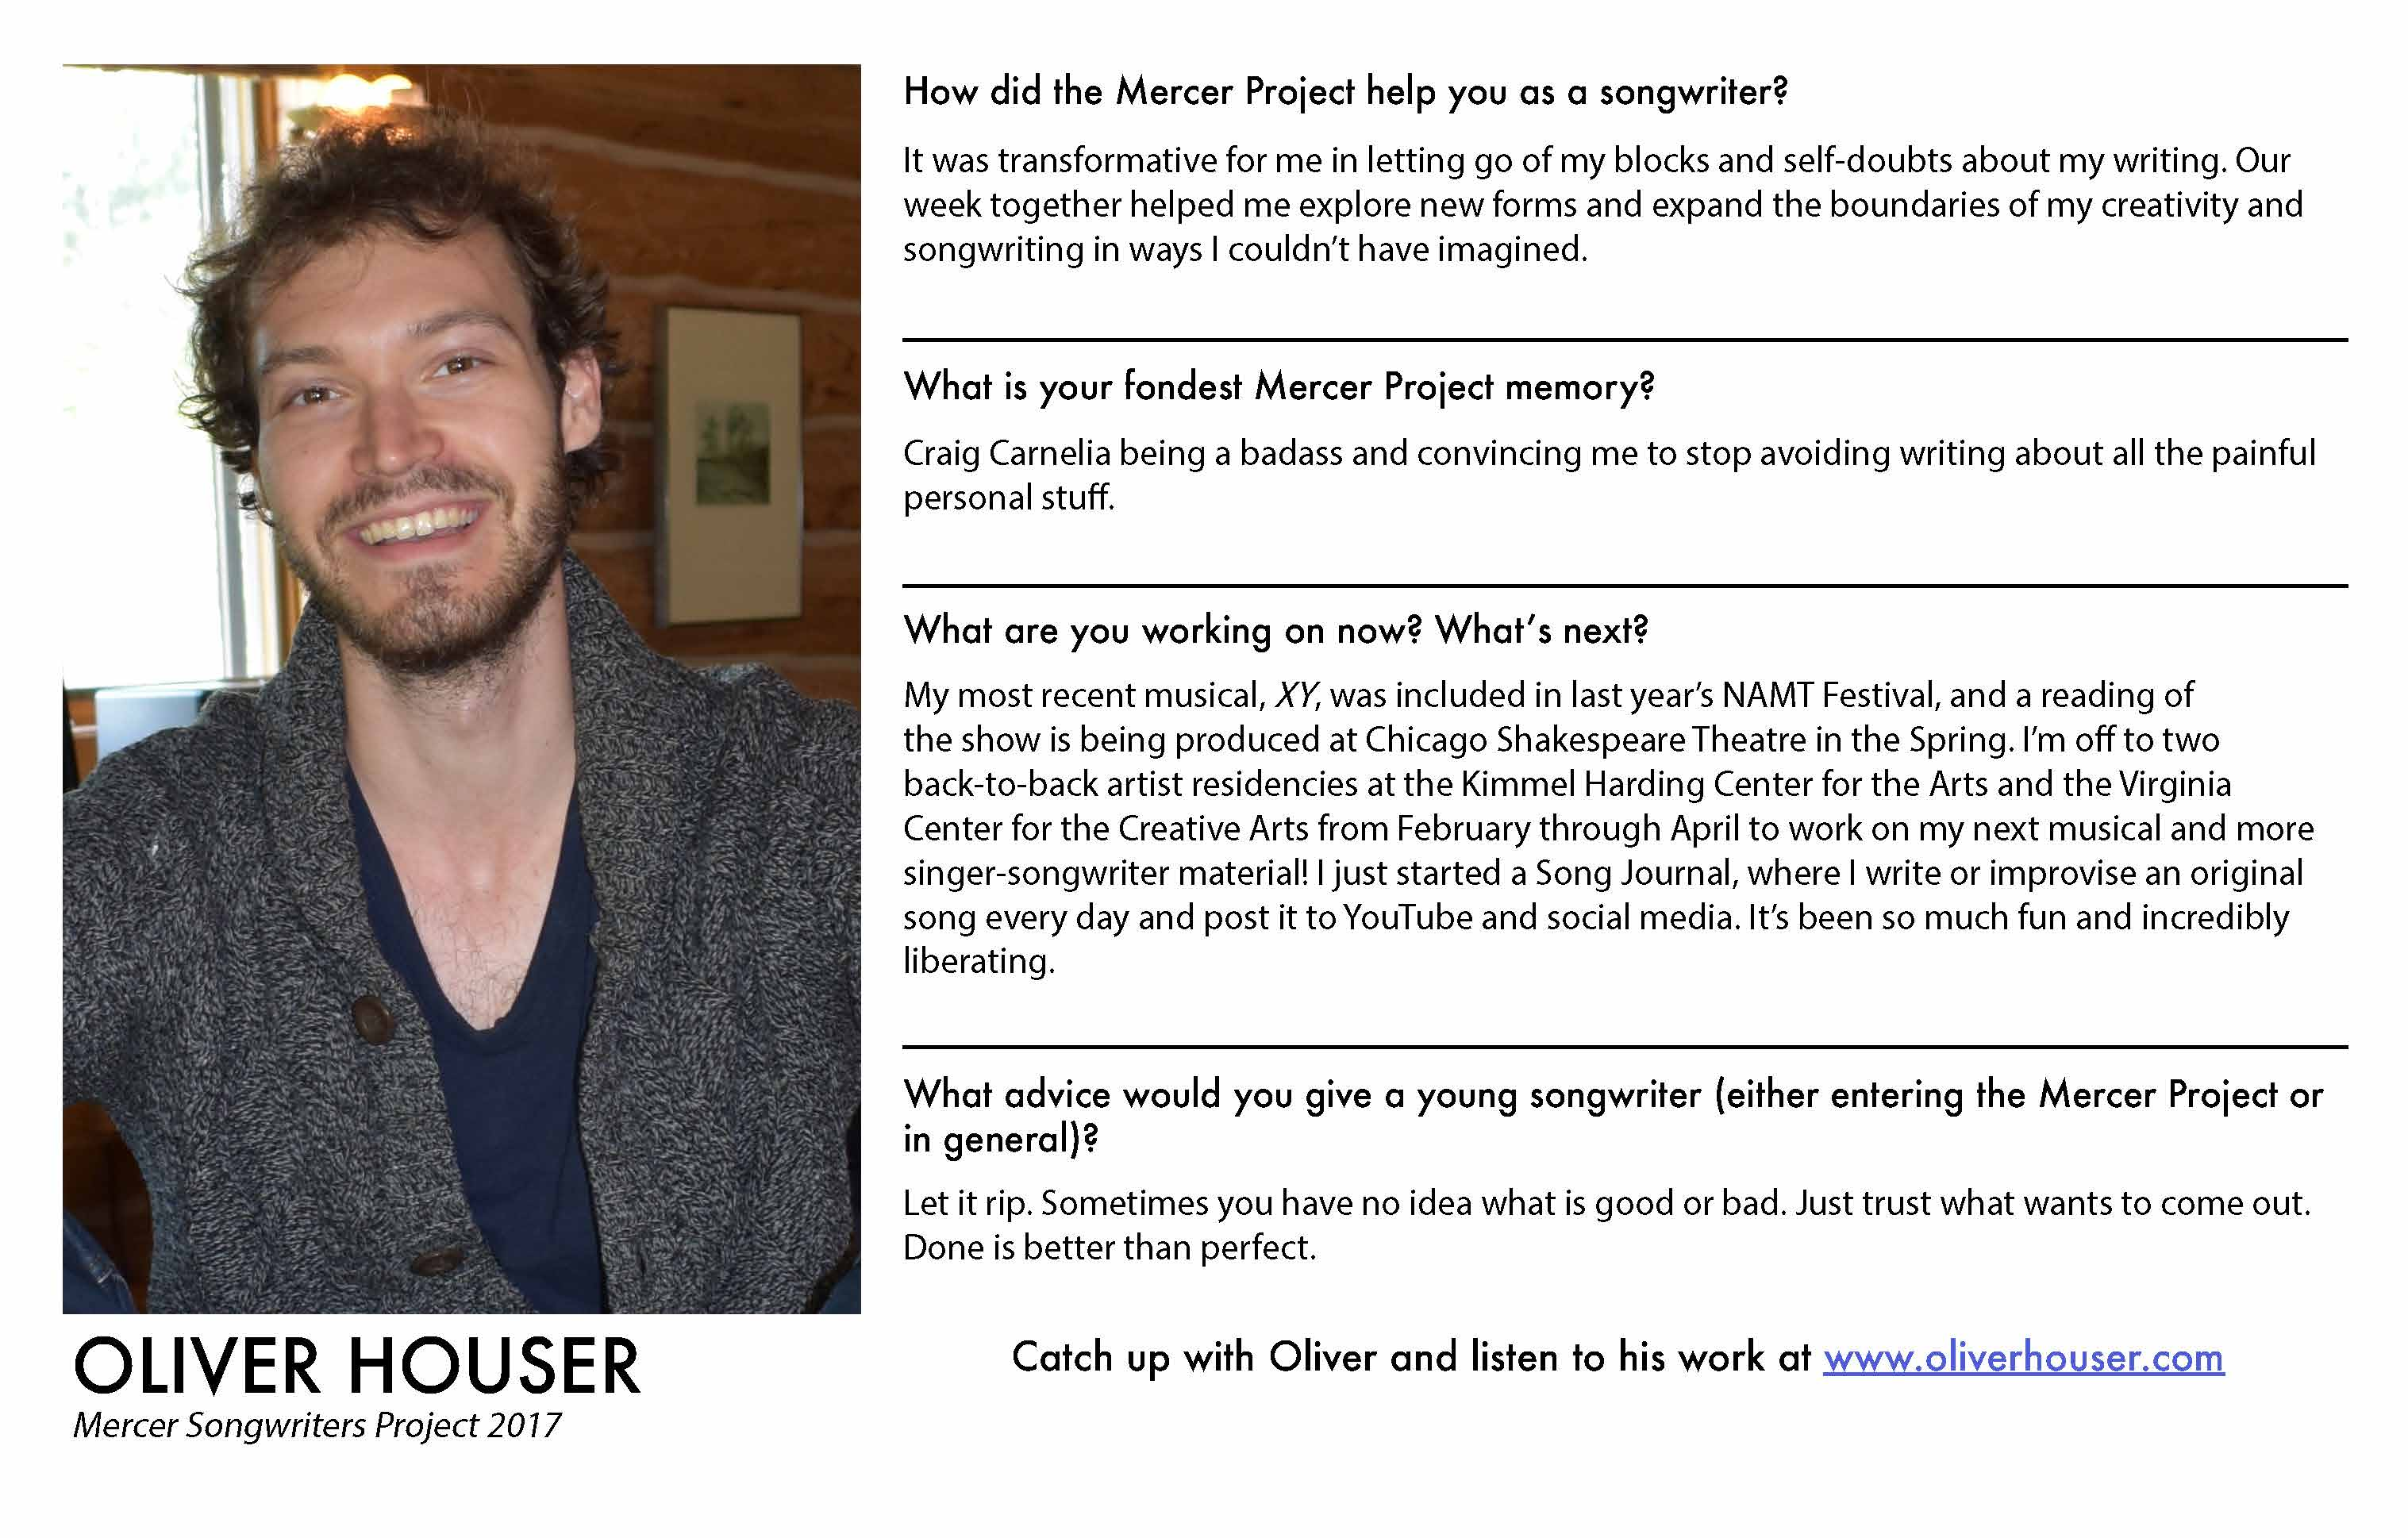 Oliver Houser - Mercer Alumni Survey 201